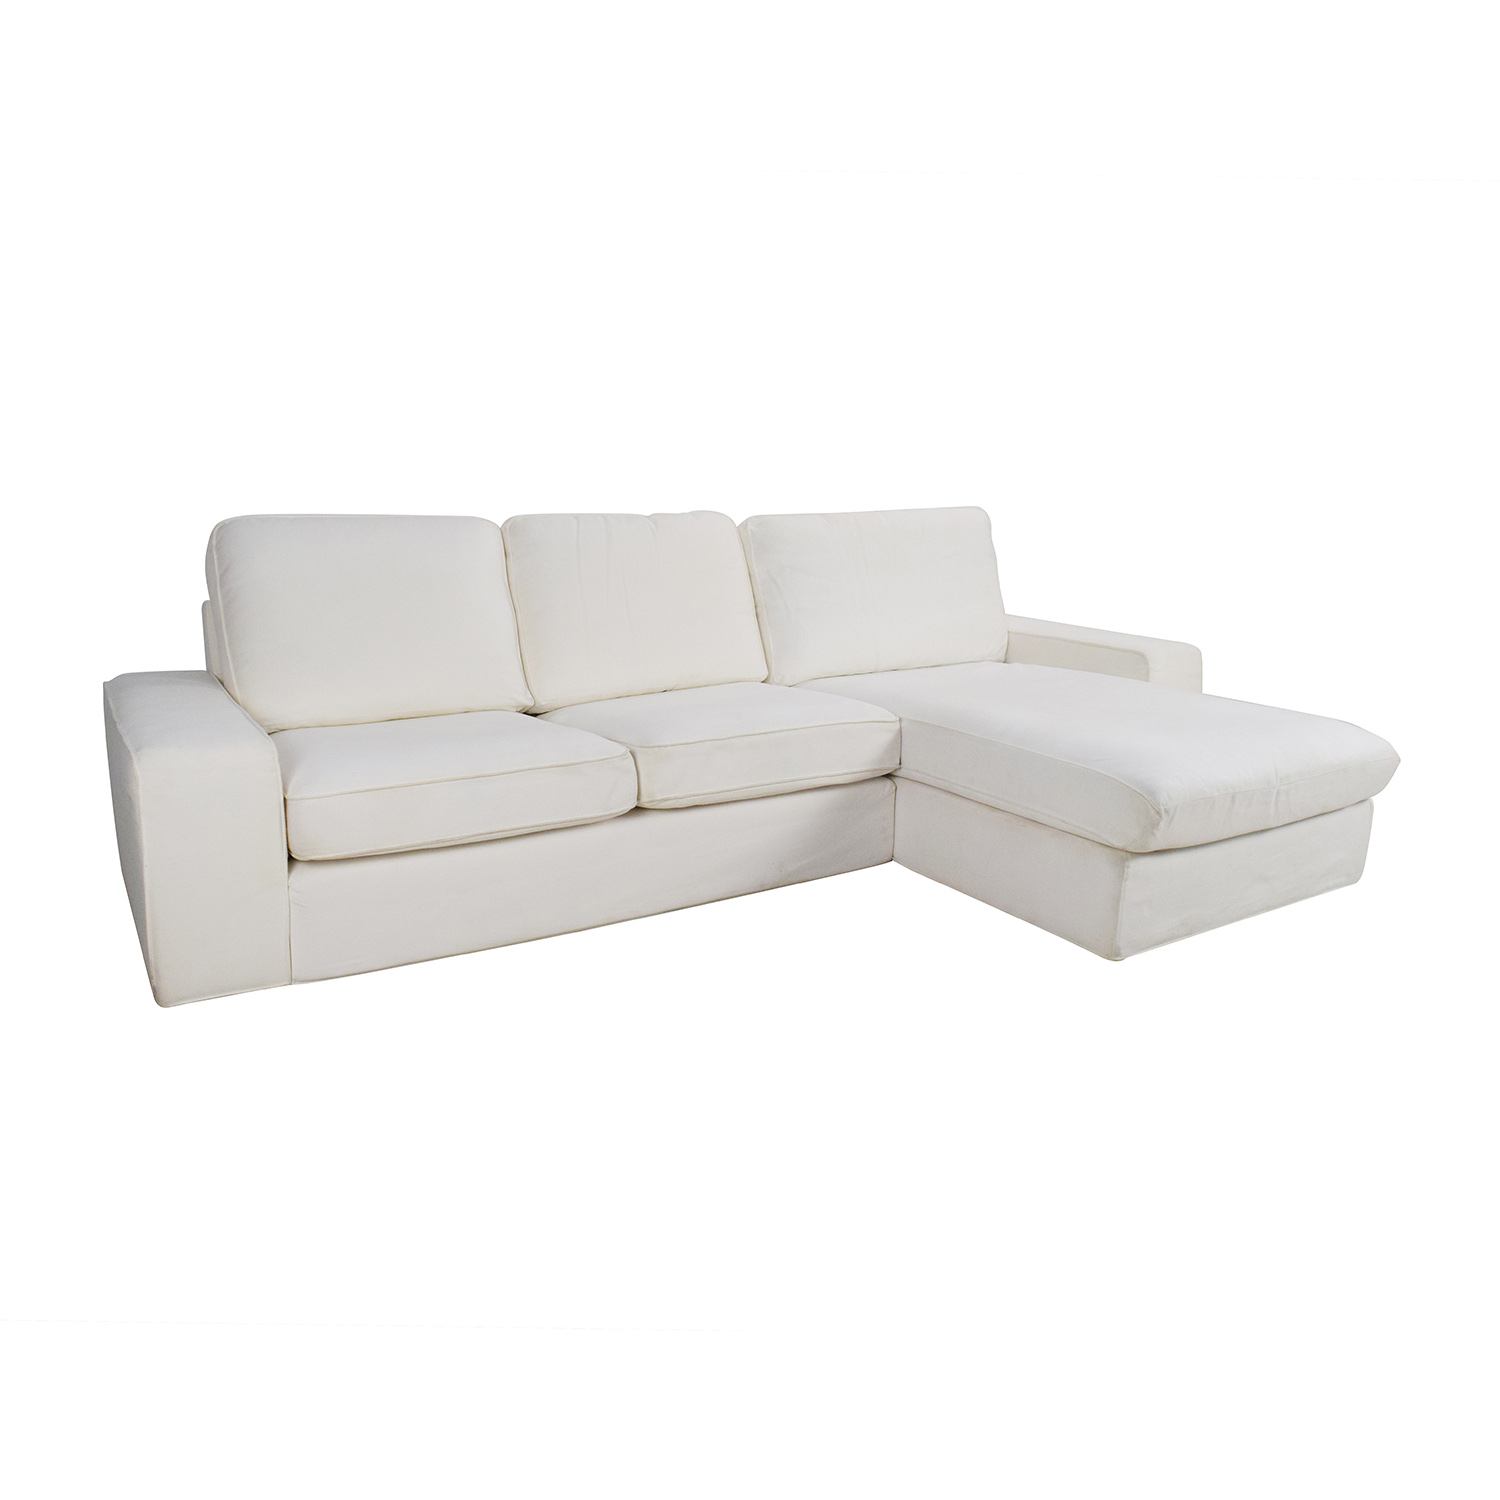 ikea sleeper sofa with chaise cheap sofas for apartments 69 off kivik and